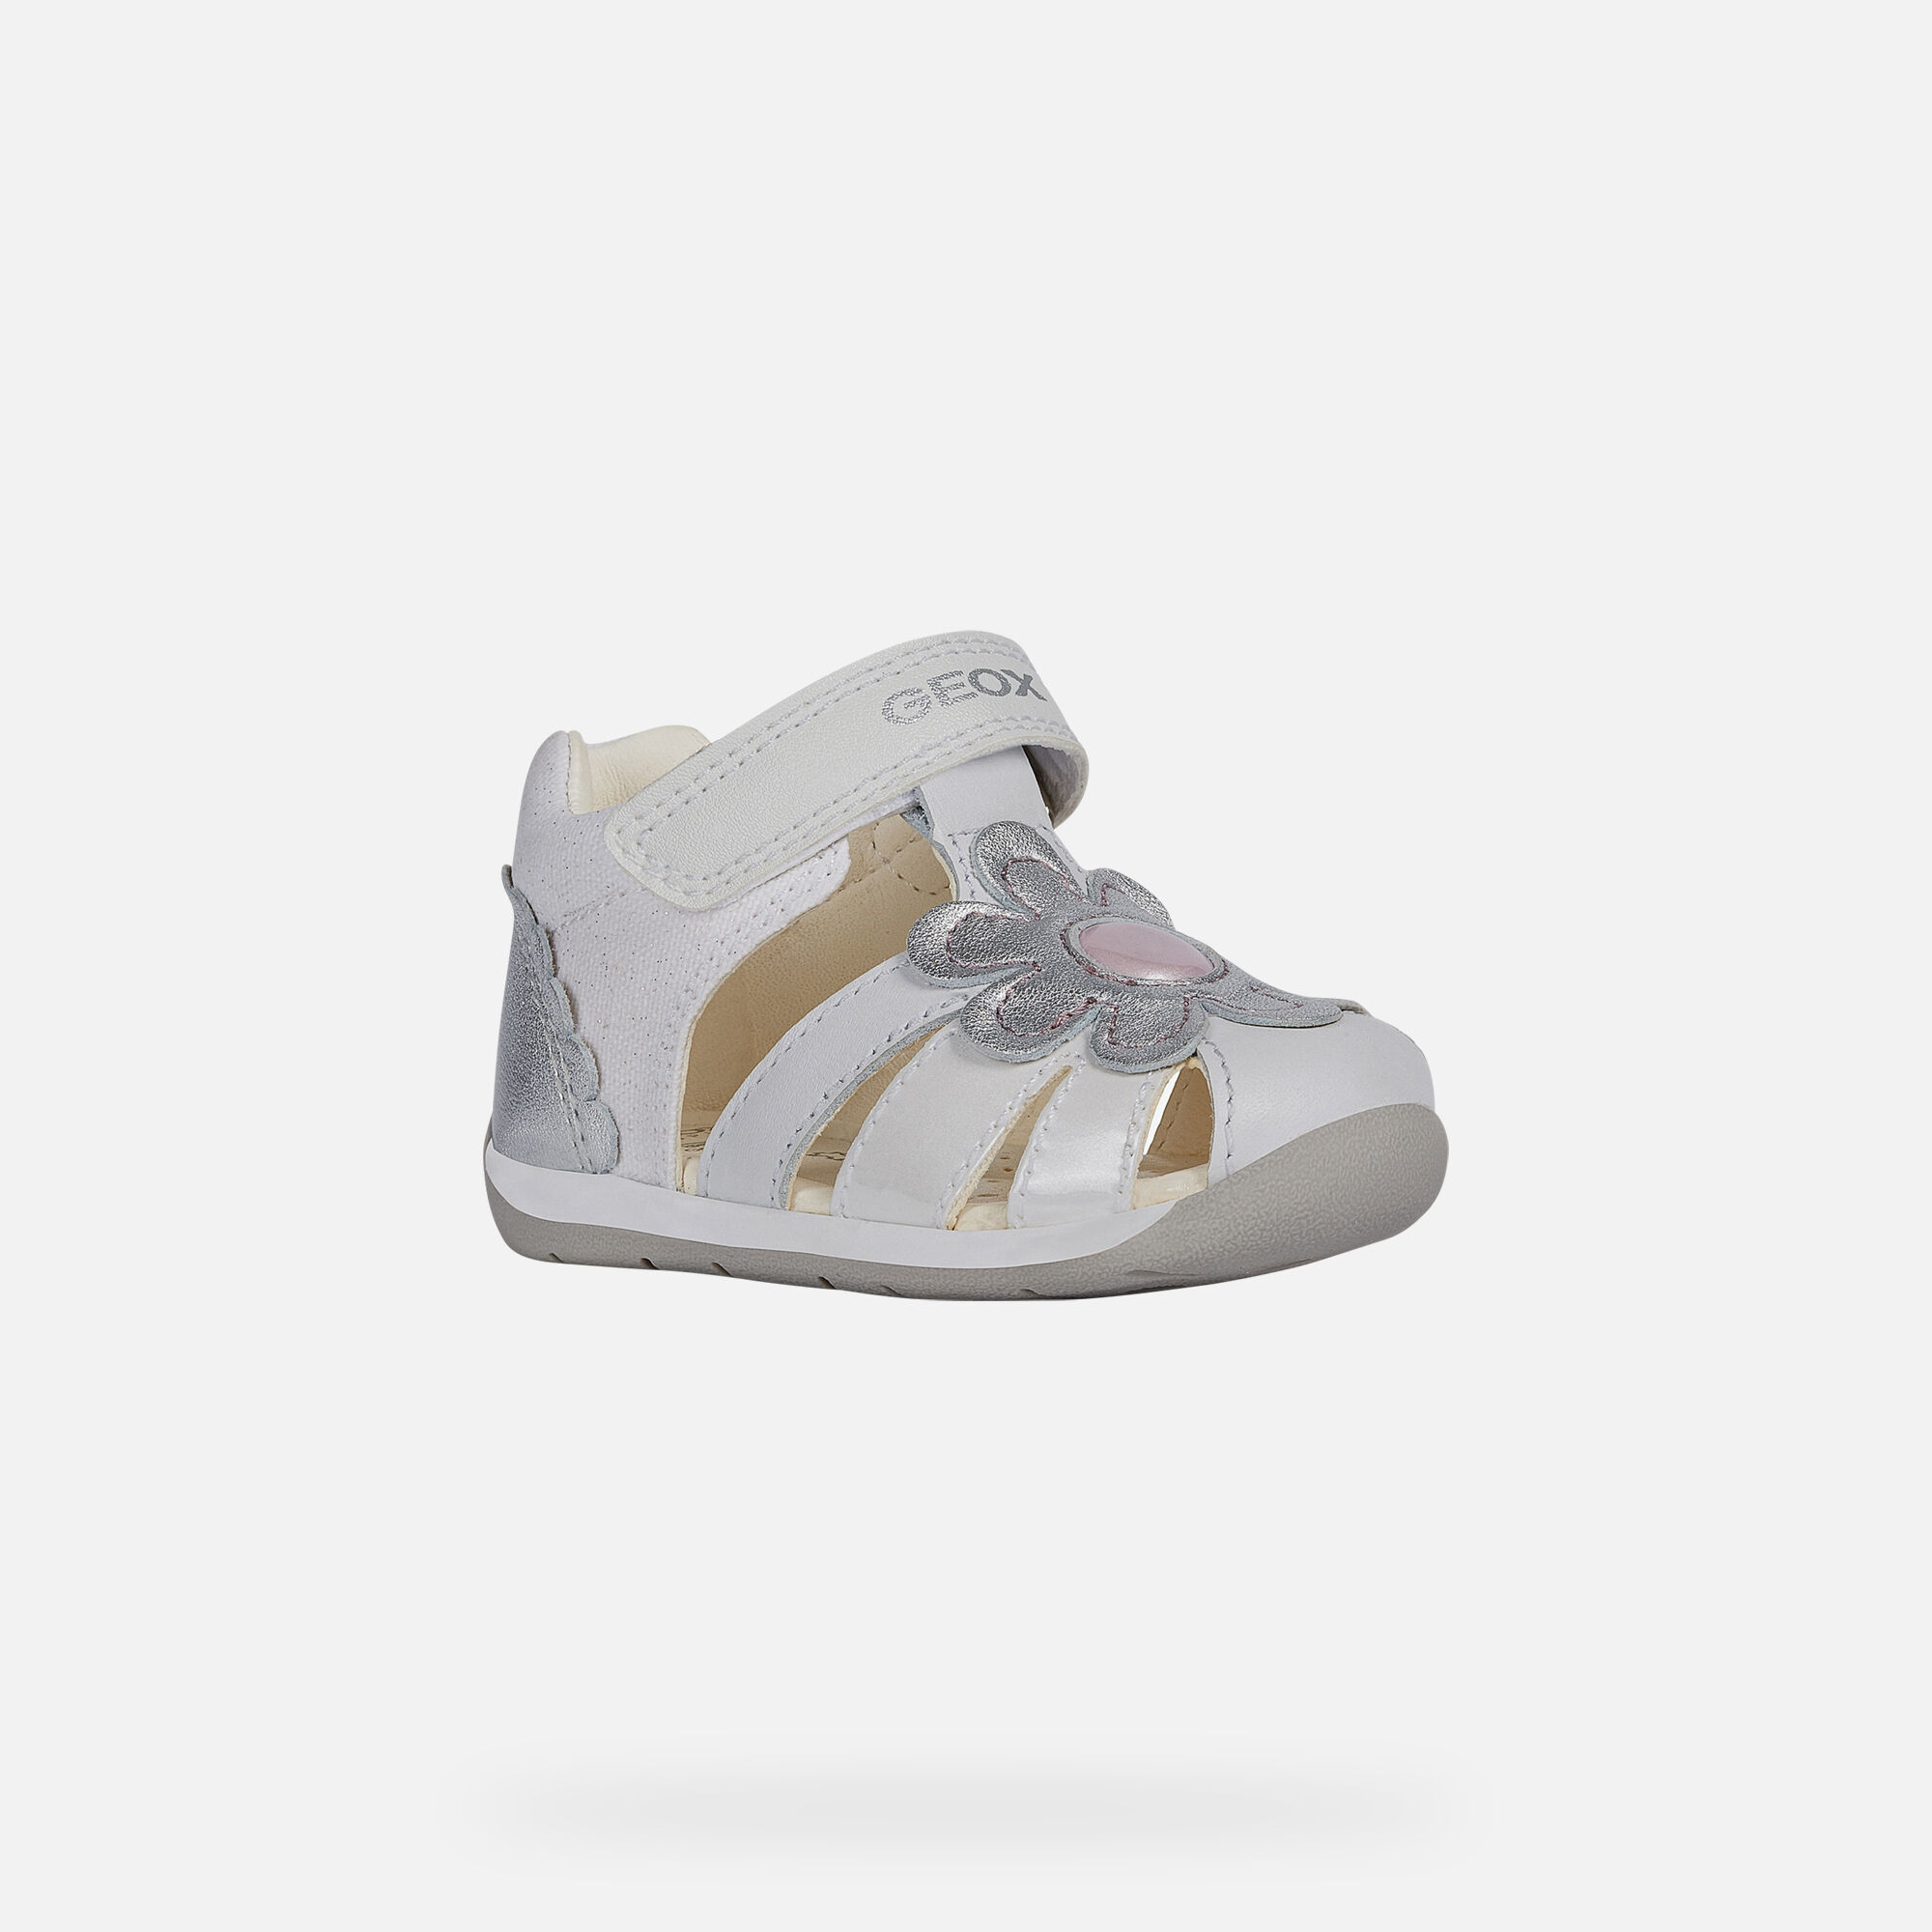 Geox B EACH: White and Silver Baby Girl First Steps Shoes | Geox